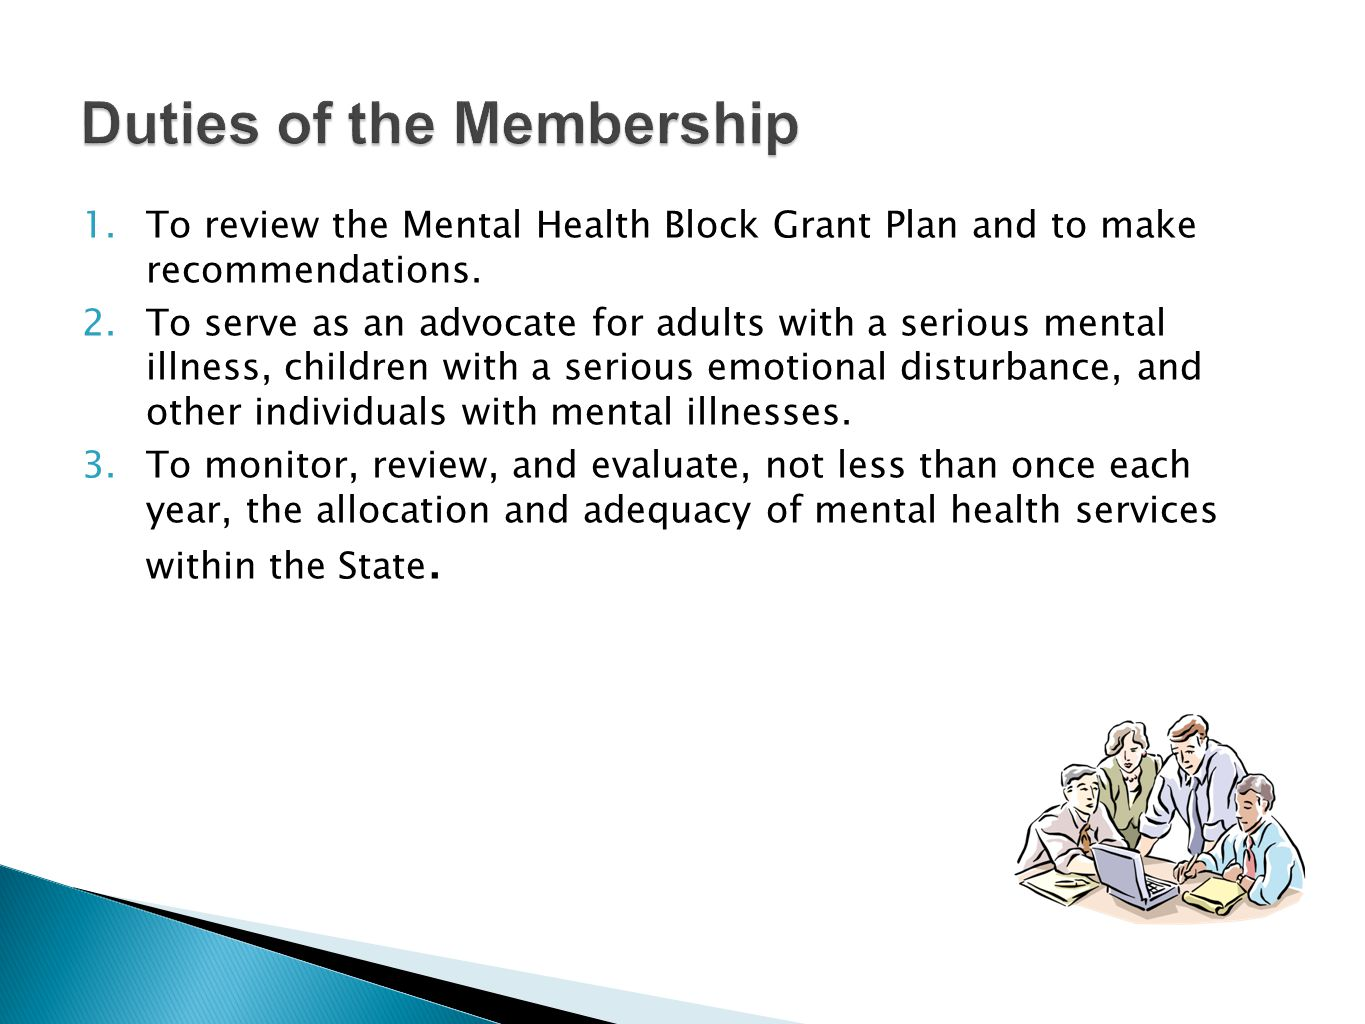 1. To review the Mental Health Block Grant Plan and to make recommendations.